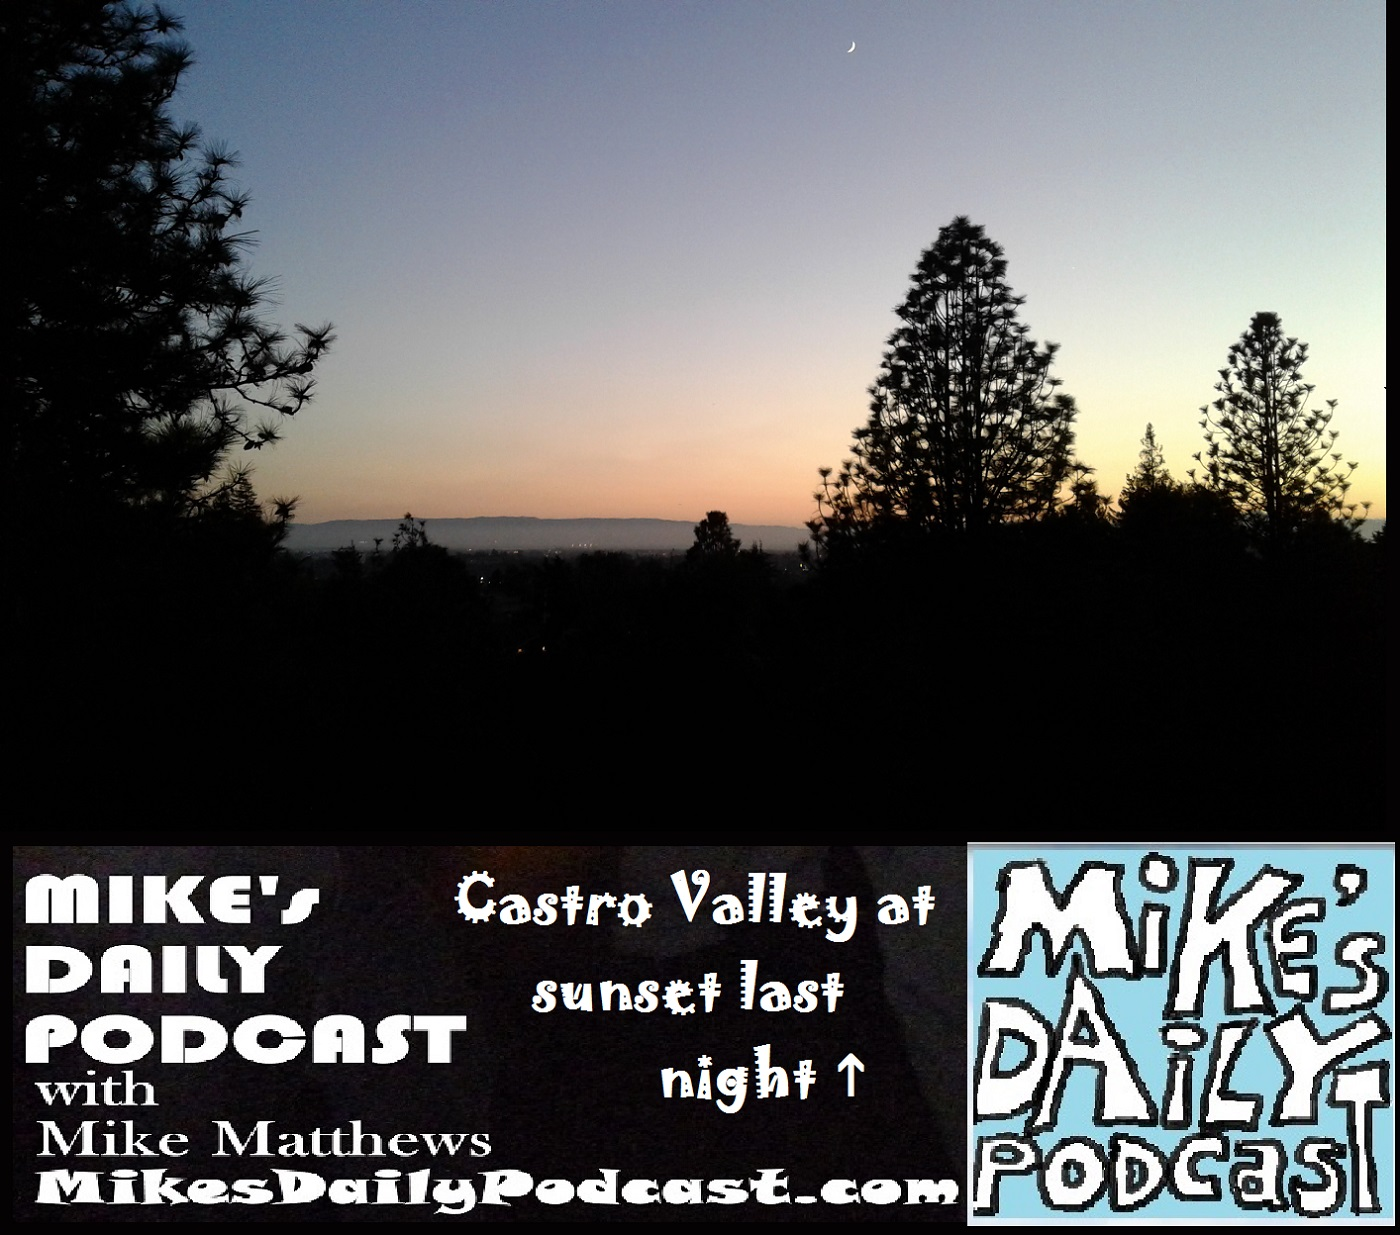 mikes-daily-podcast-1189-castro-valley-sunset